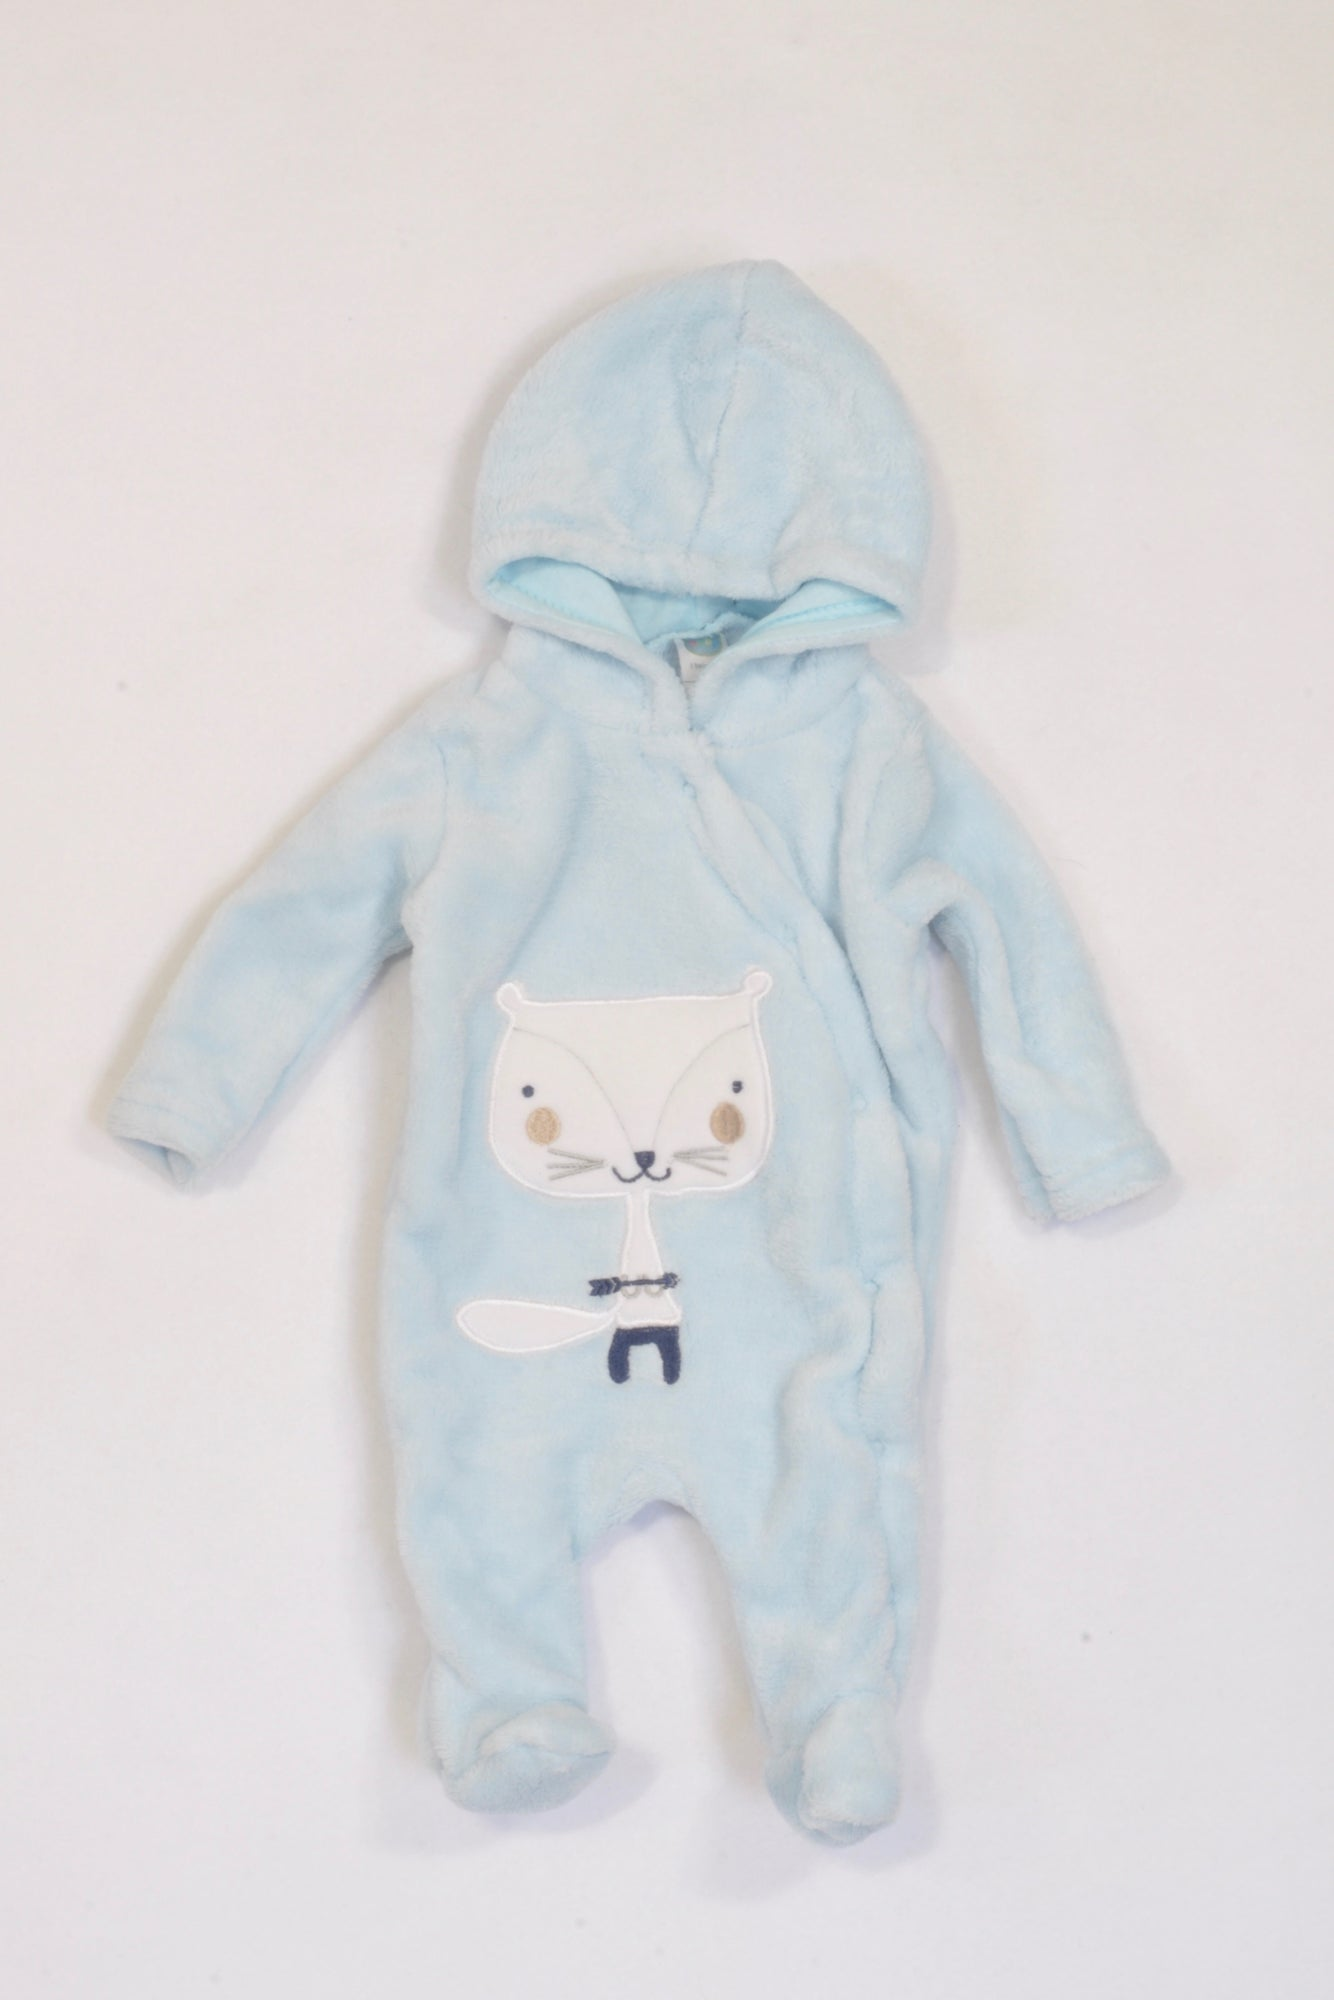 Ackermans Soft Blue Hooded Fleece Fox 2 of 2 Onesie Boys N-B